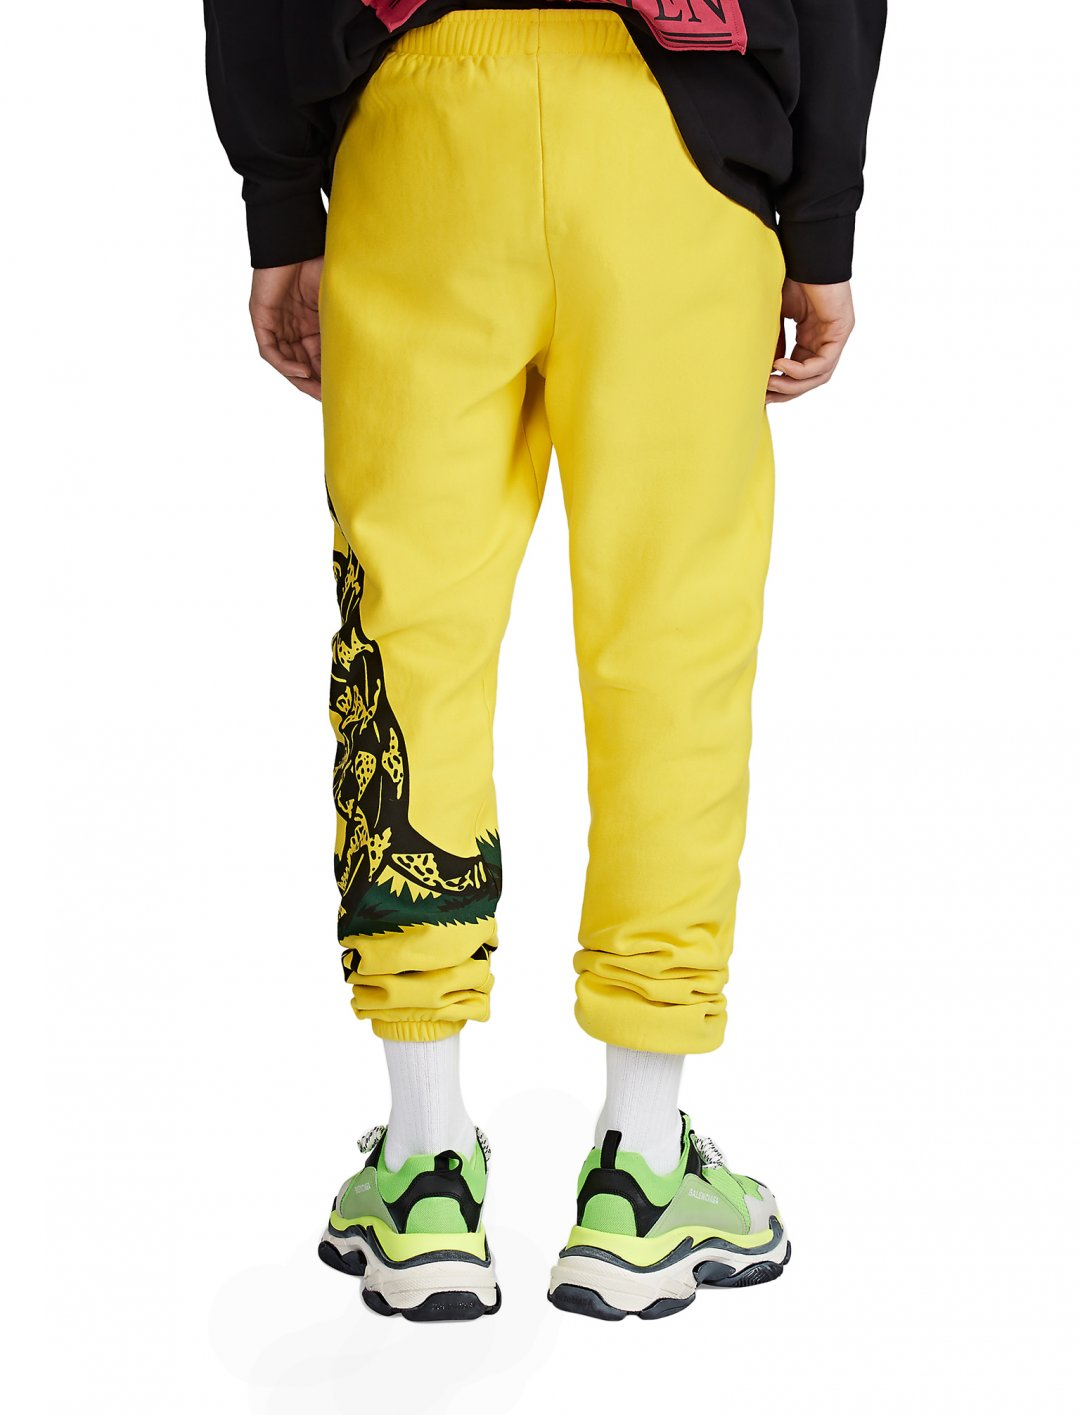 Yellow Cotton Sweatpants Clothing Vetements